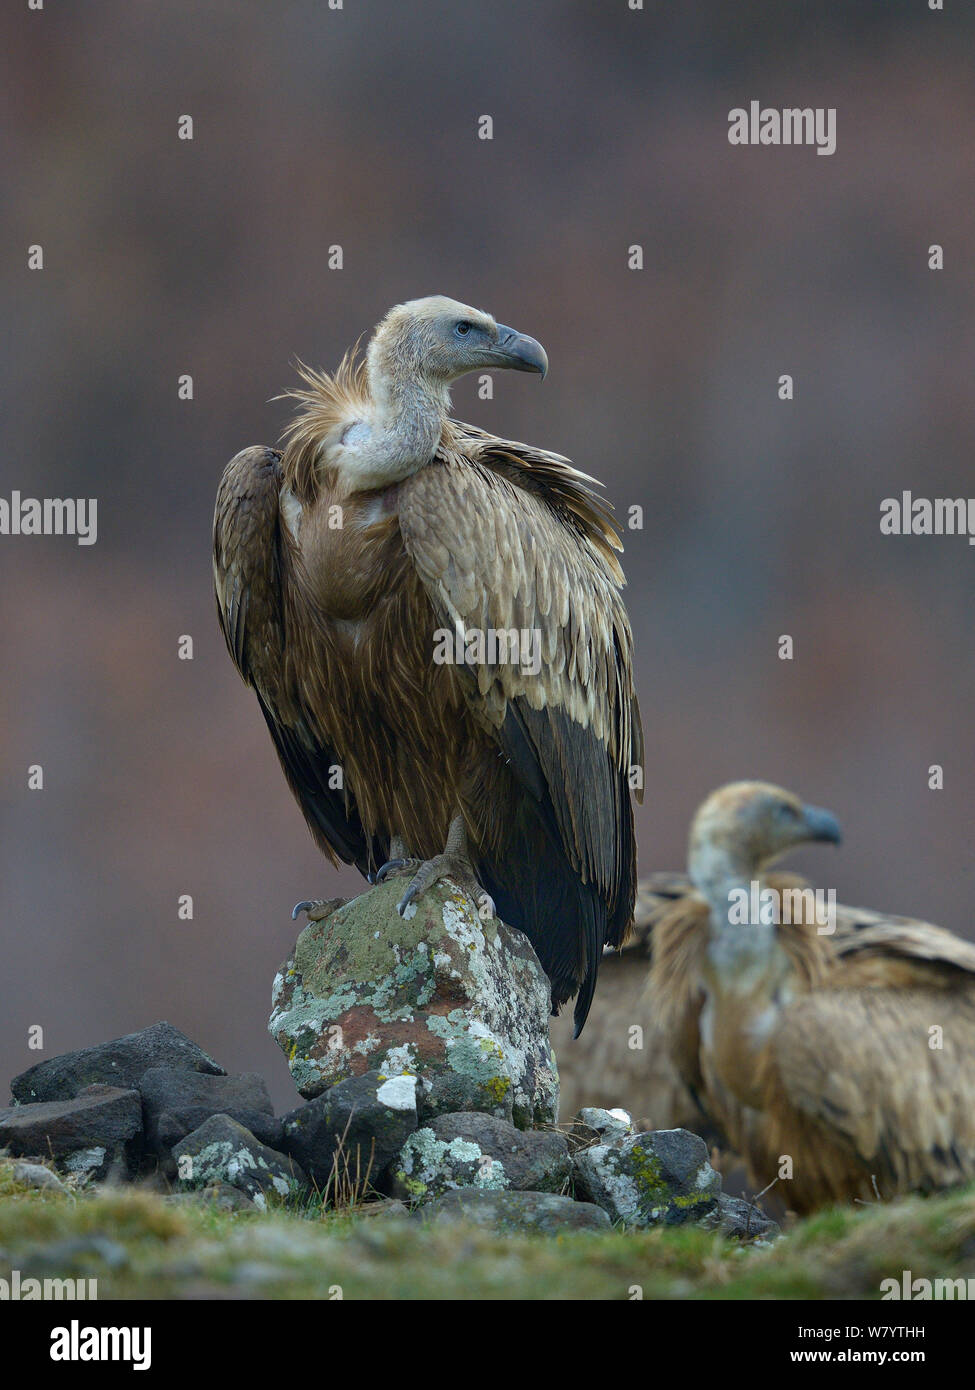 Griffon vulture (Gyps fulvus) perched on rock, Rhodopes, Bulgaria, January. Stock Photo